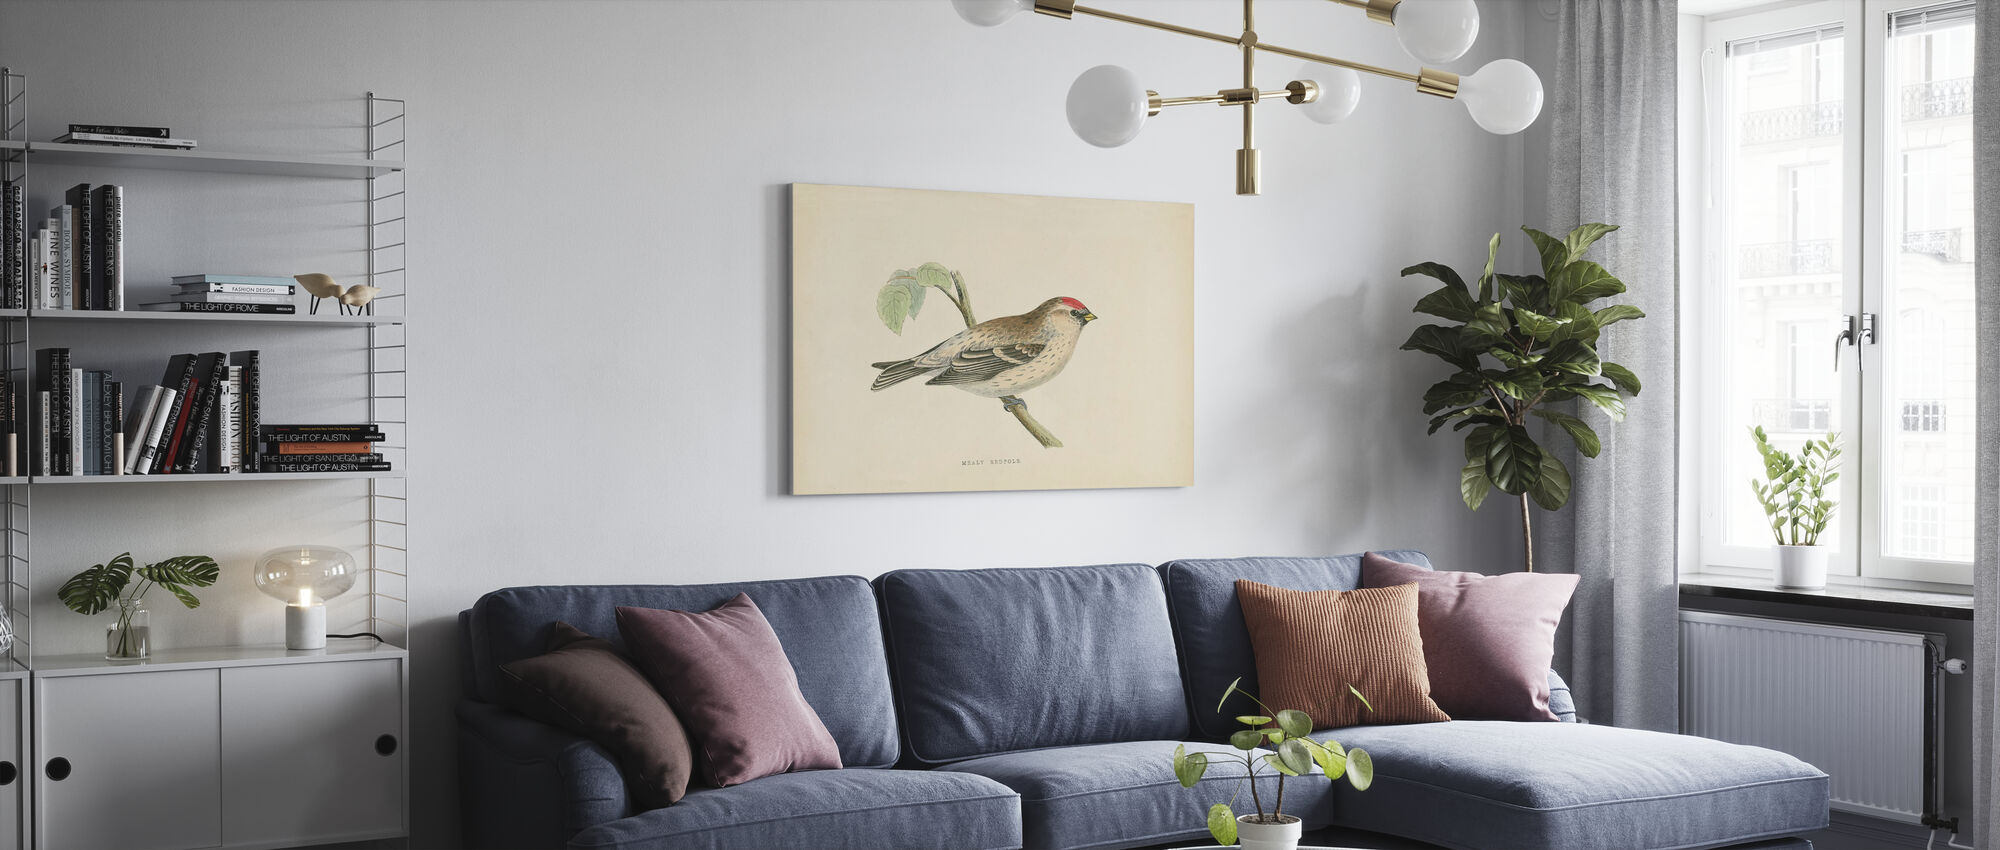 Mealy Redpole Print - Canvas print - Living Room